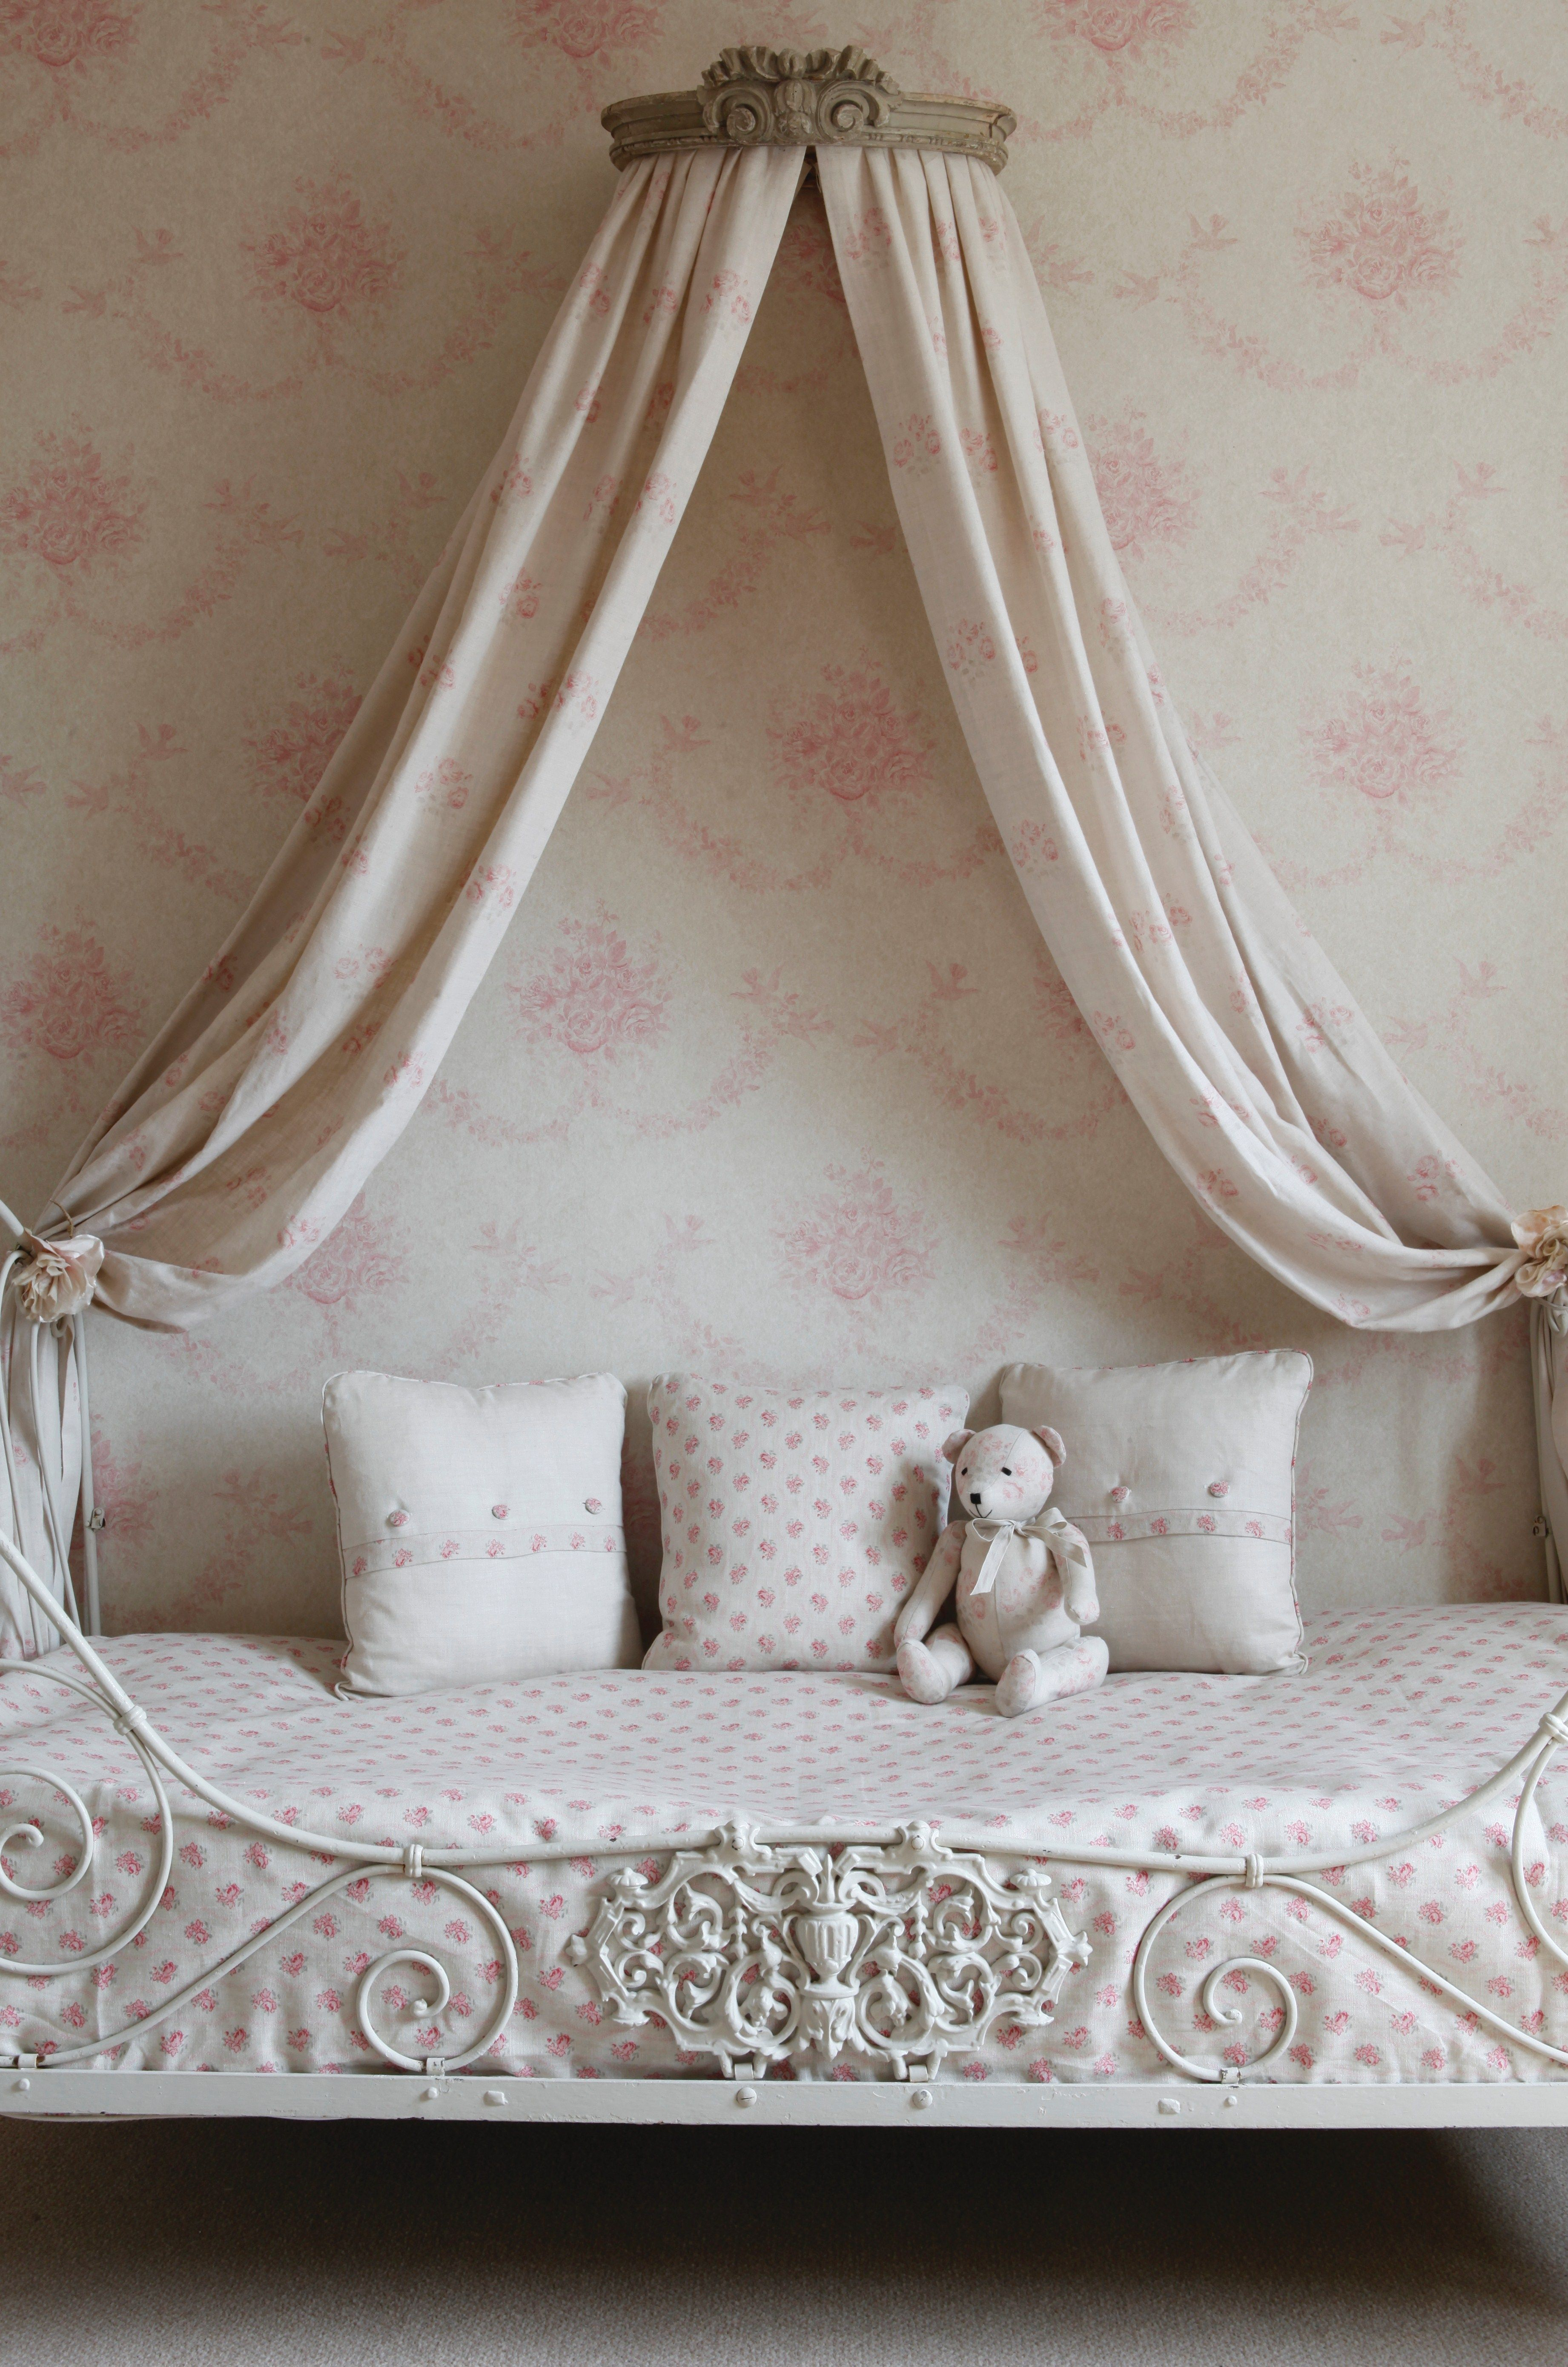 Baby Girl Nursery Wallpaper Uk This French Style Bed With A Pediment Canopy Is Perfect